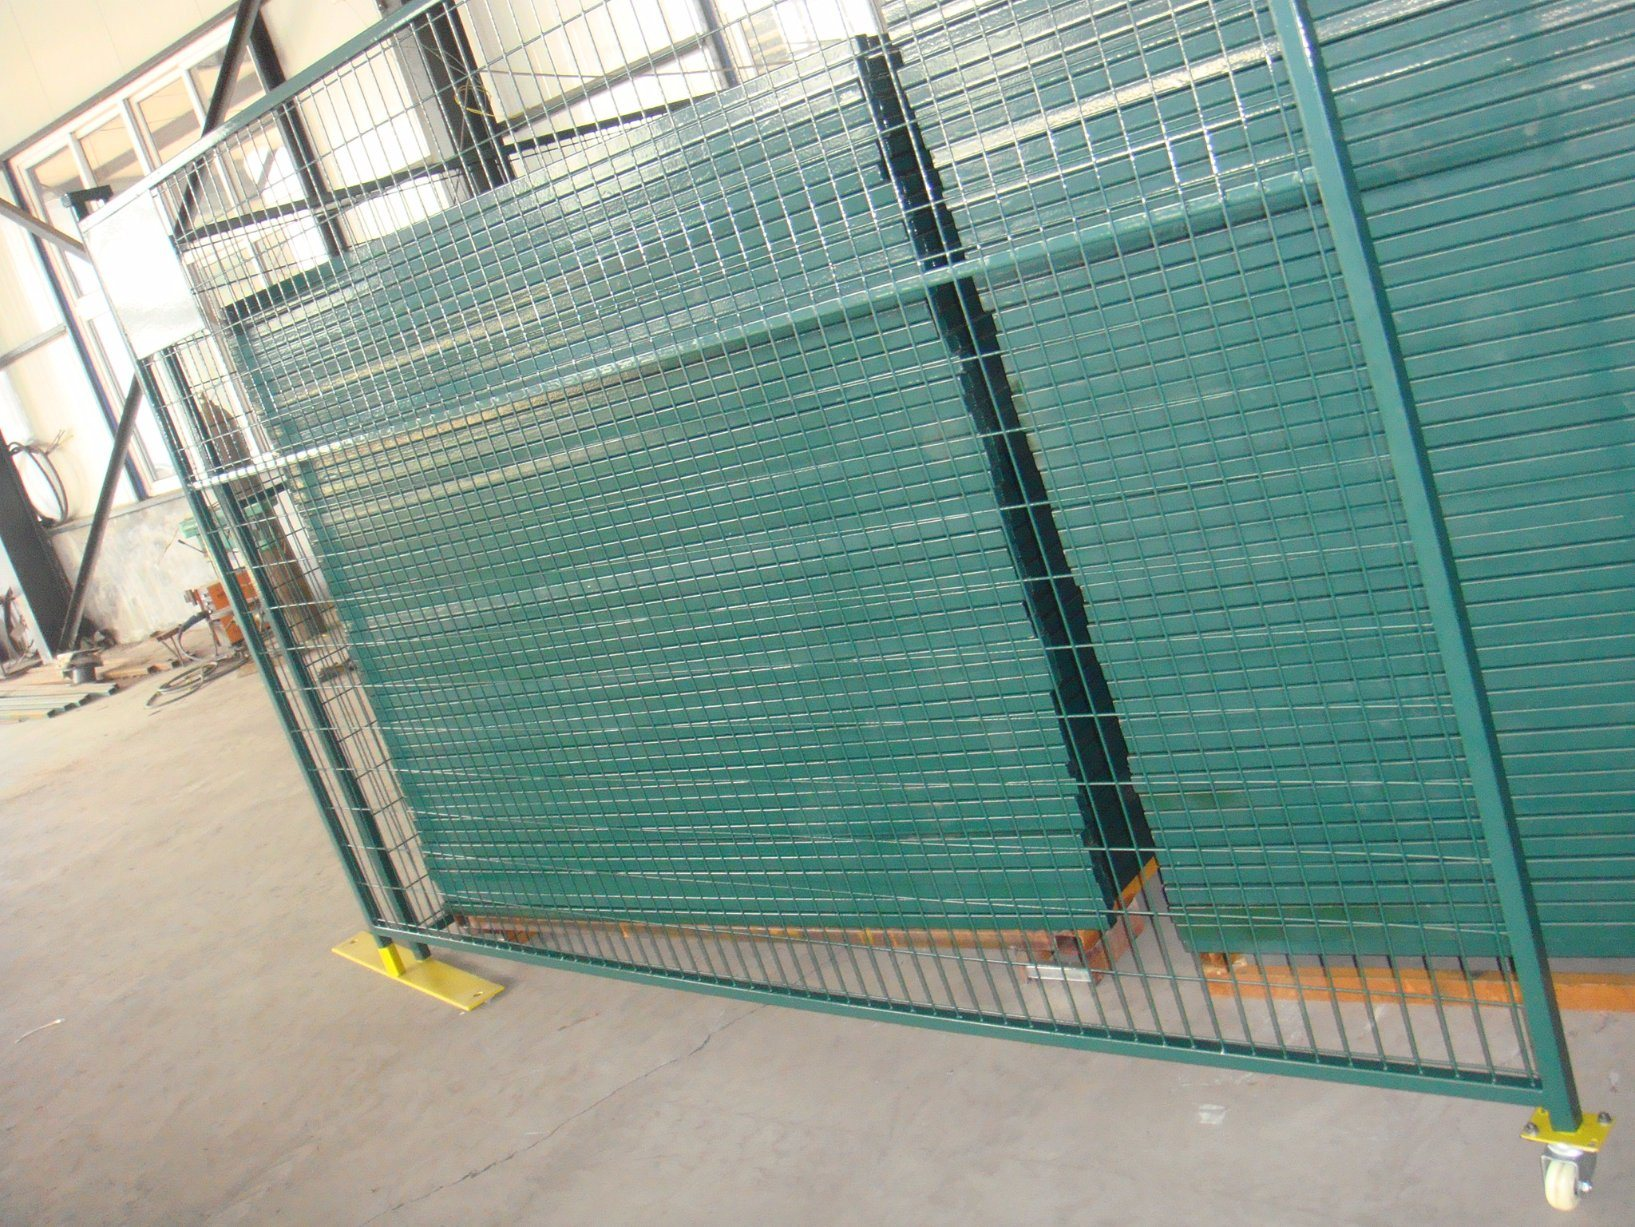 Temporary Security Construction Fence Panels 6foot X 10foot Outdoor Temp Fence Panels pictures & photos